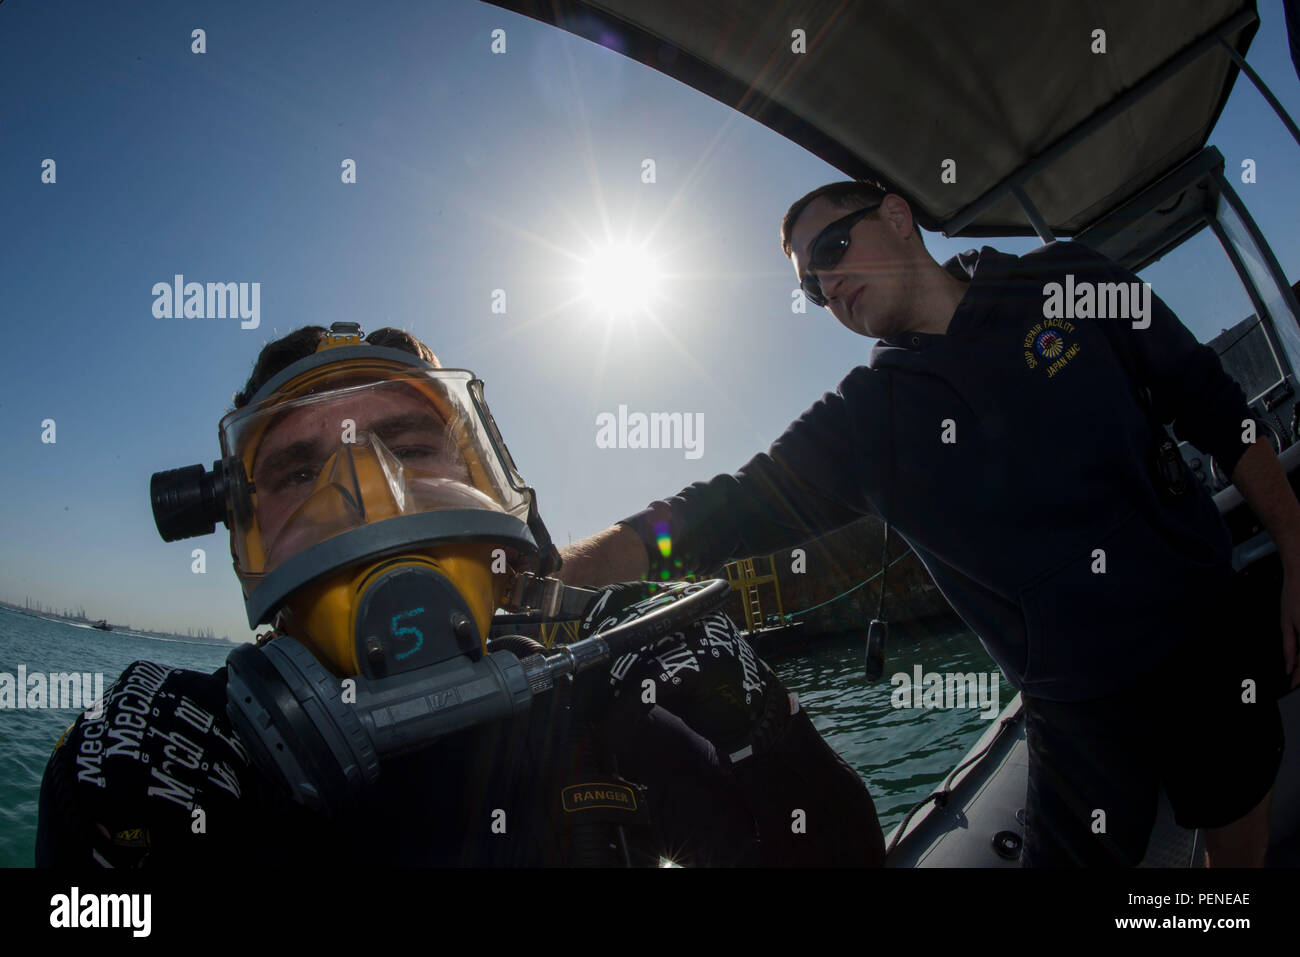 160106-N-BJ294-032 NAVAL SUPPORT ACTIVITY BAHRAIN (Jan. 6, 2016) Navy Diver 1st Class Scott Colvin conducts gear checks on Navy Diver 3rd Class Dakota Helm, assigned to Commander, Task Group (CTG) 56.1, prior to conducting an anti-terrorism force protection dive. CTG 56.1 conducts mine countermeasures, explosive ordnance disposal, salvage-diving and force protection operations throughout the U.S. 5th Fleet area of operations. (U.S. Navy Combat Camera photo by Mass Communication Specialist 2nd Class Wyatt Huggett/Released) - Stock Image